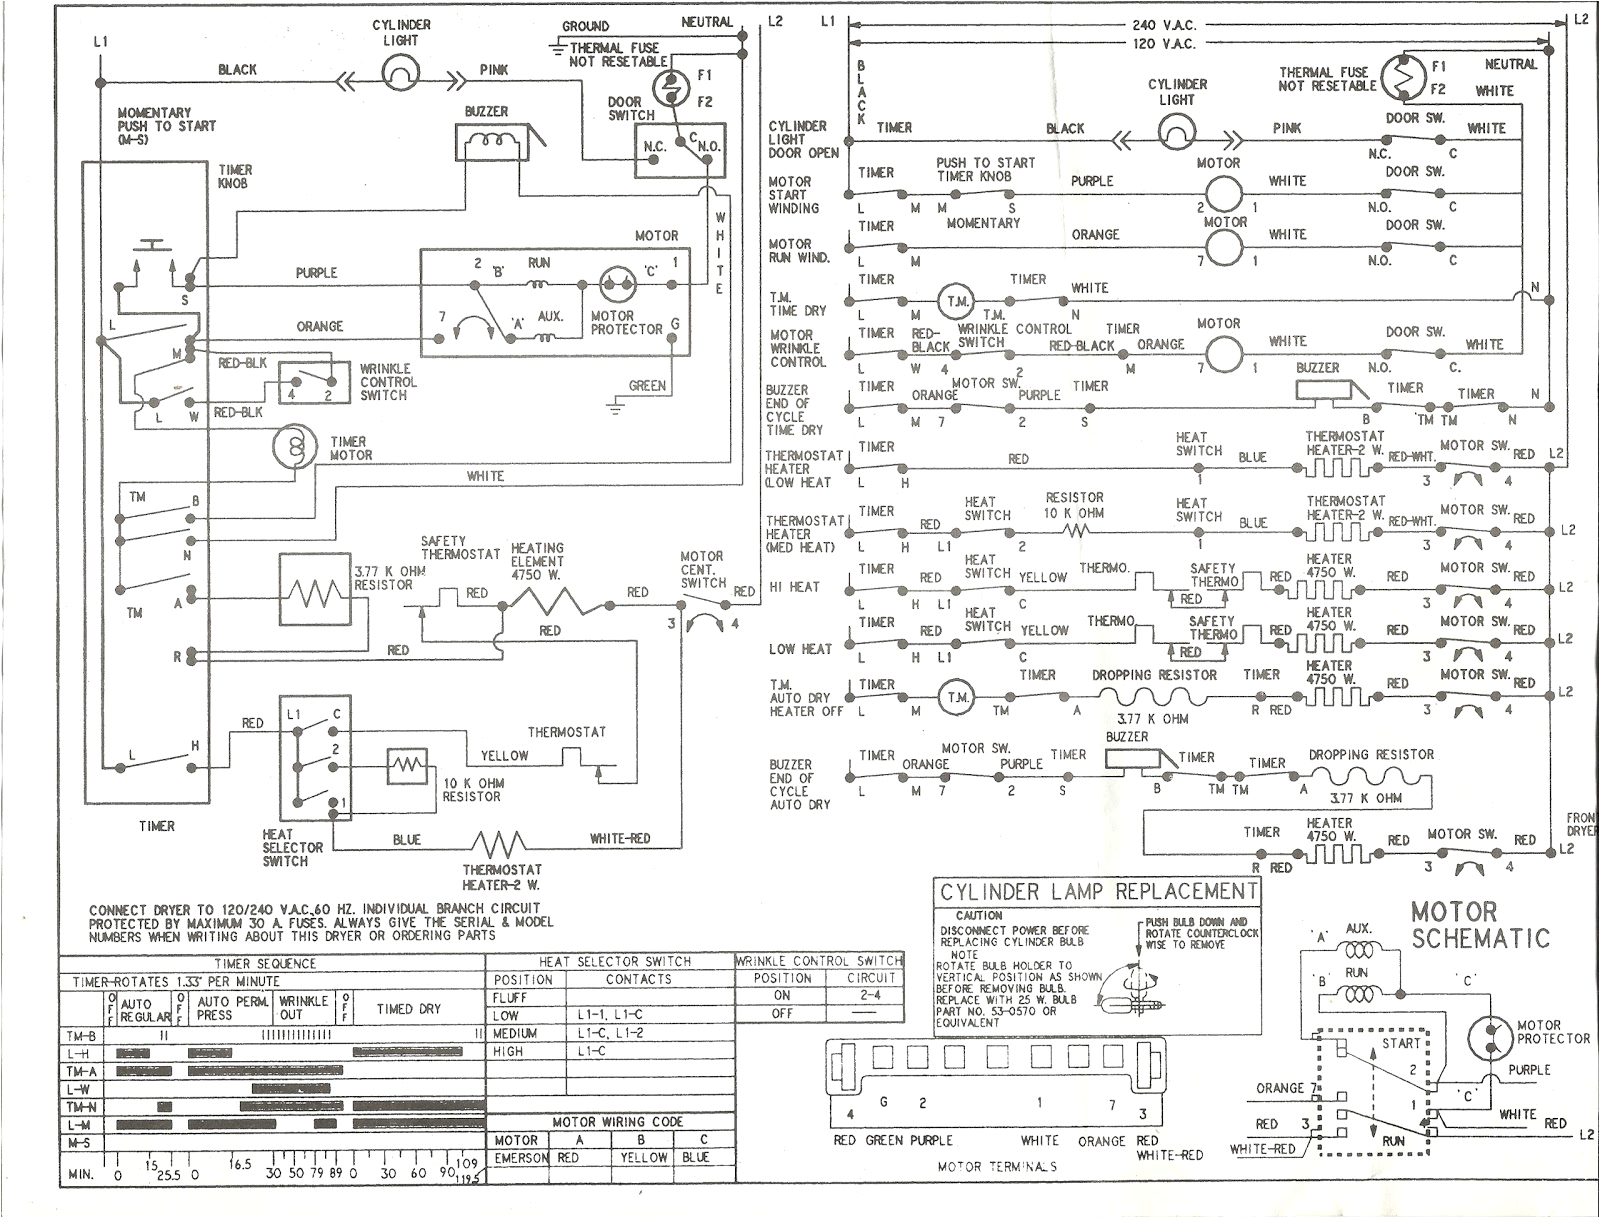 kenmore series electric dryer wiring diagram schematic